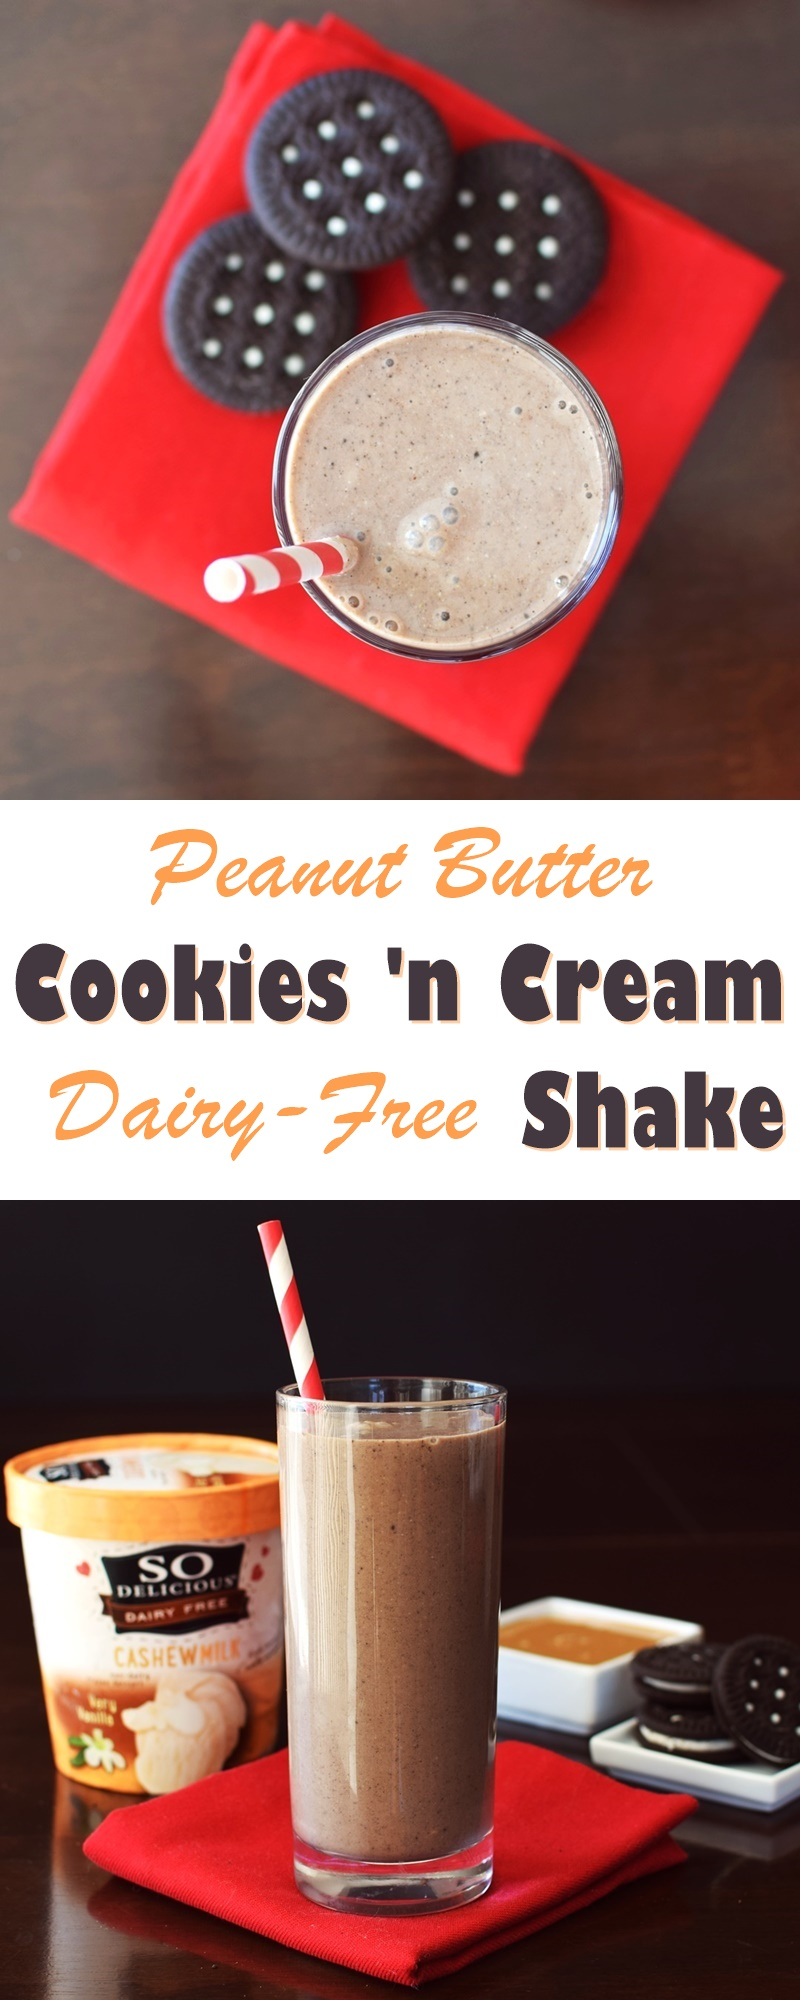 Peanut Butter Cookies 'n Cream Shake Recipe (indulgent vegan milkshakes with peanut butter, gluten-free sandwich cookies and very vanilla dairy-free ice cream)